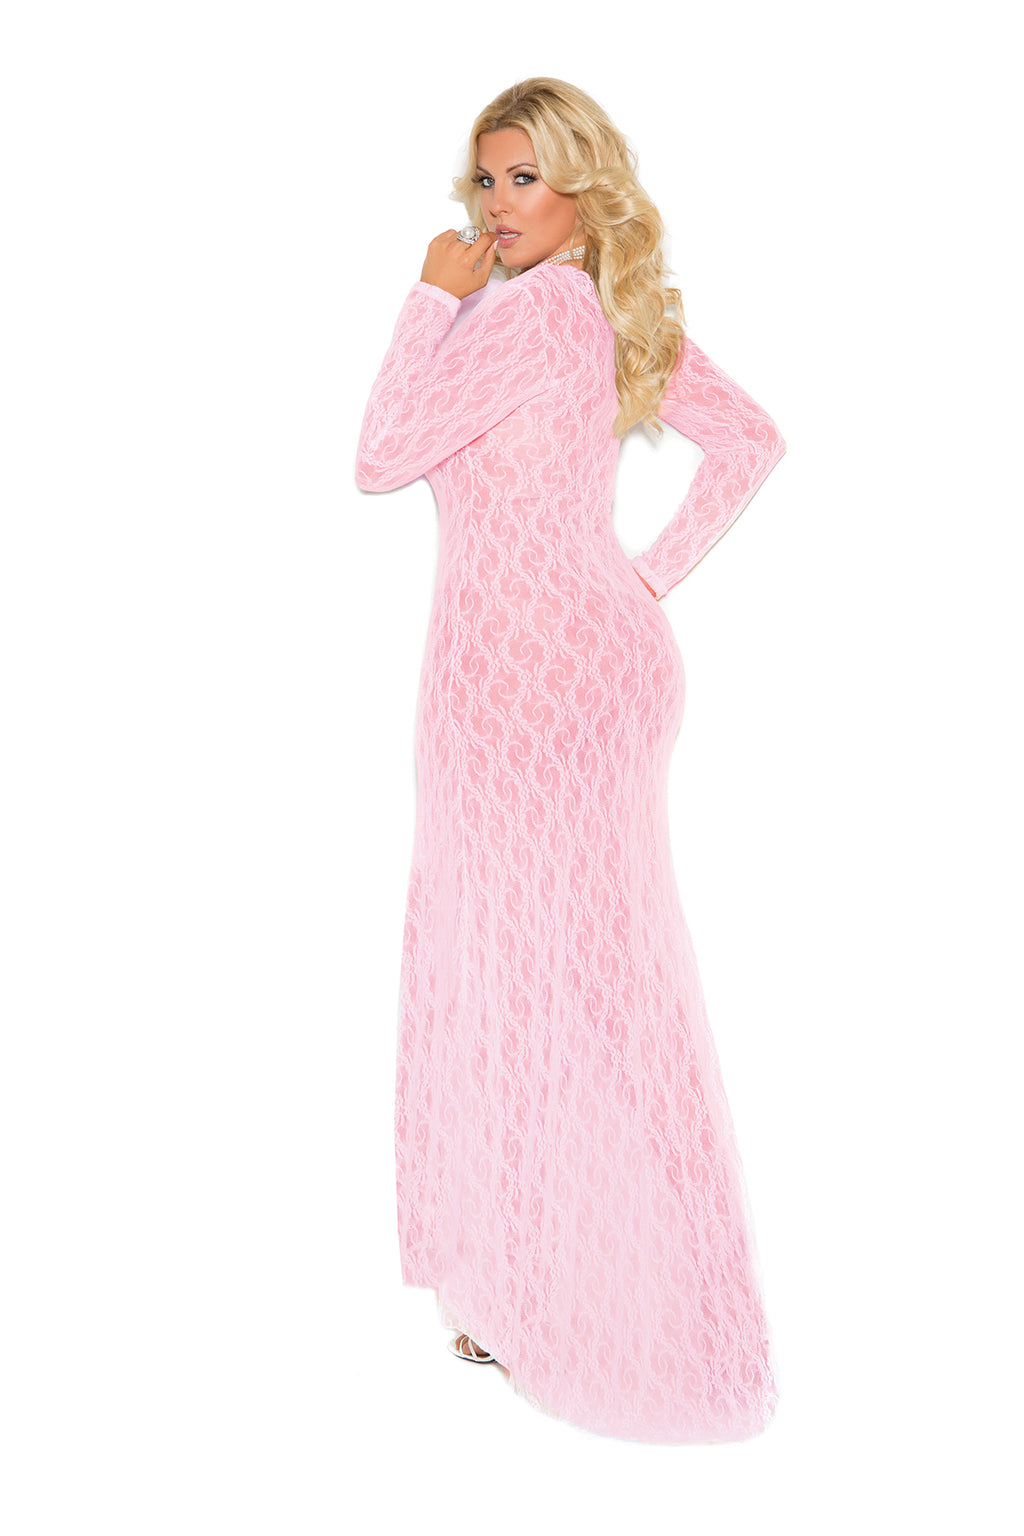 Elegant Moments 1949 Baby Pink Long Sleeve Lace Dress